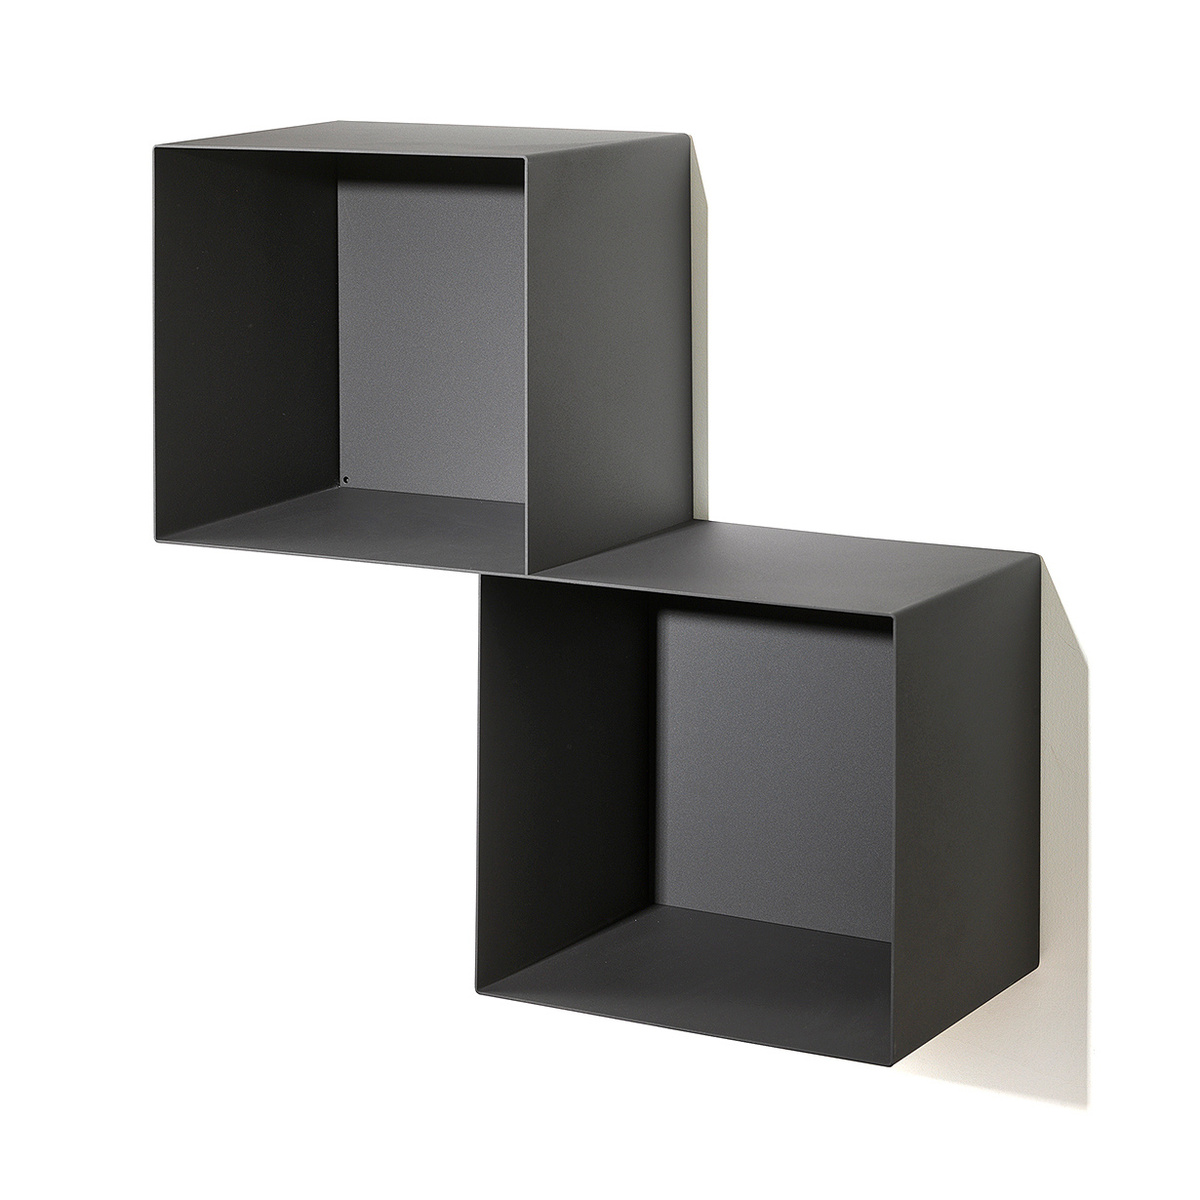 biblioth que modulaire mur twin h 60 cm by pezzani lovethesign. Black Bedroom Furniture Sets. Home Design Ideas